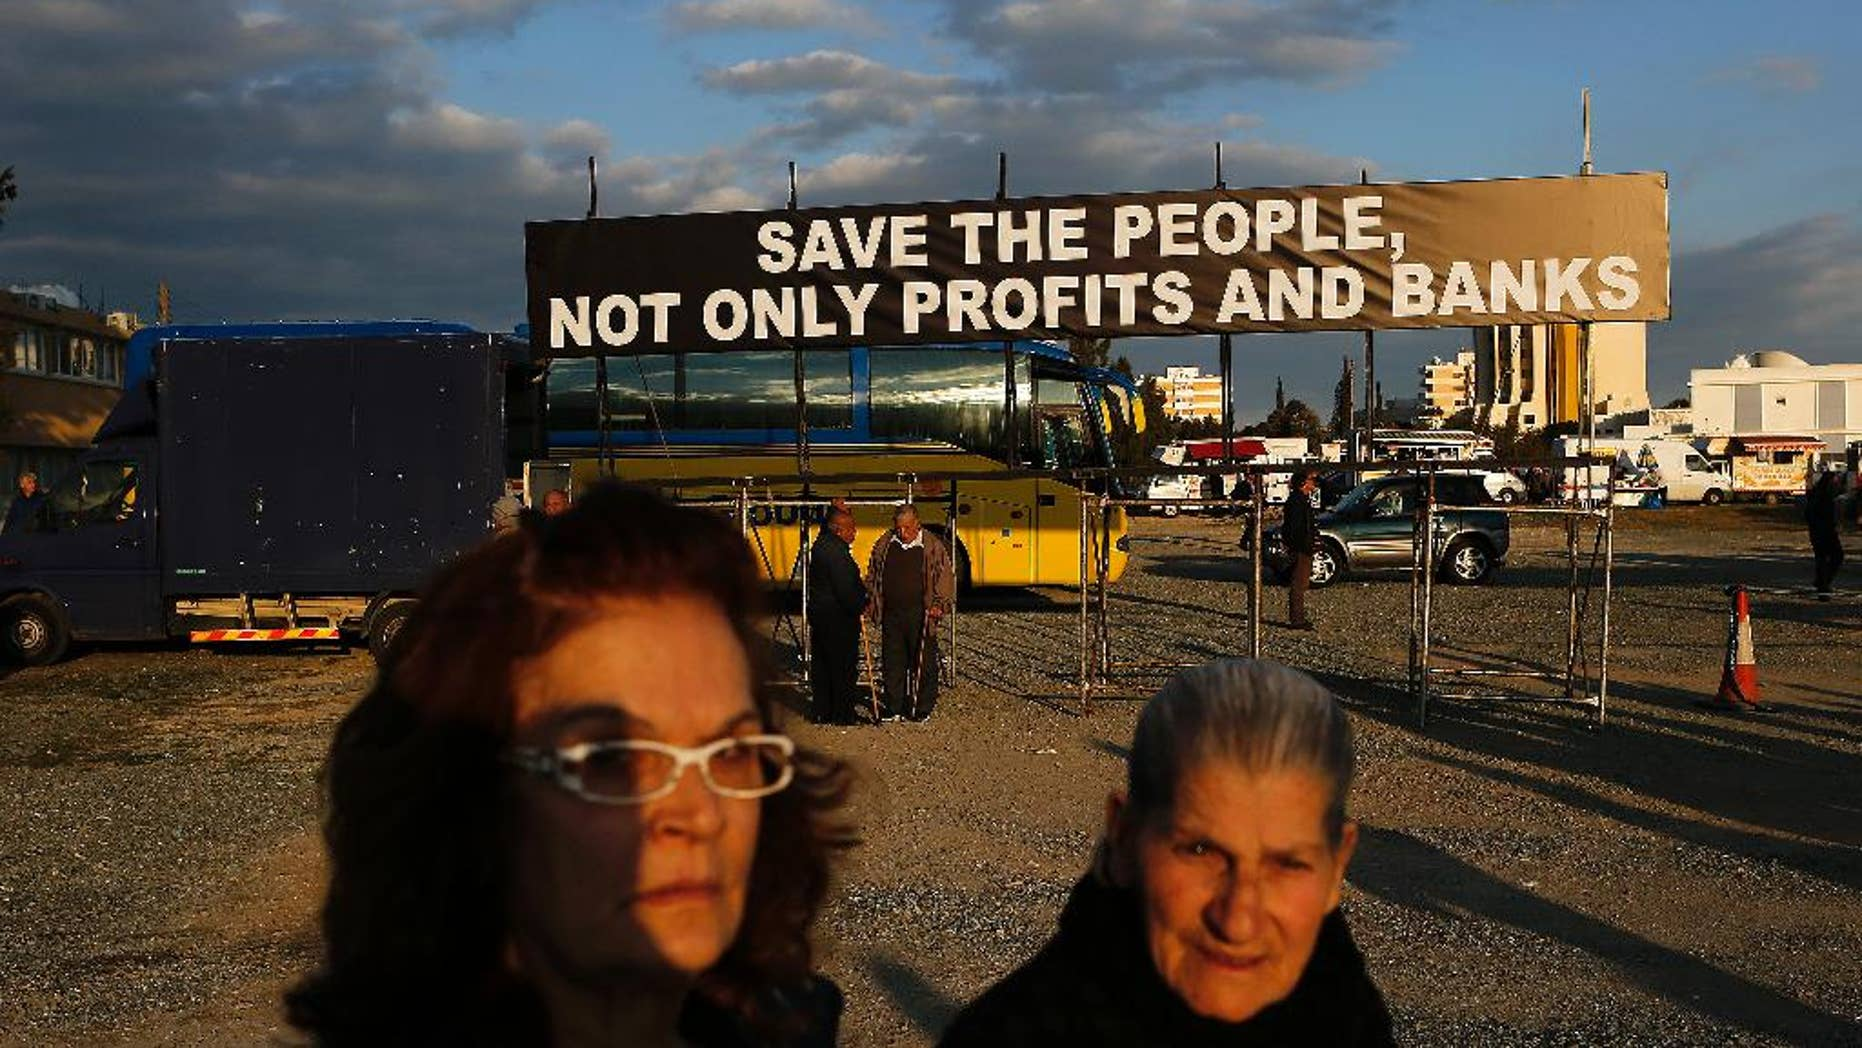 Two protestors walk in front of a banner during an anti austerity demonstration outside a European Central Bank Governing Council meeting at the conference center in capital Nicosia, Cyprus, Wednesday, March 4, 2015. Several thousand demonstrators in Cyprus called for an end to austerity policies they say has driven many in the bailed-out country to poverty. (AP Photo/Petros Karadjias)